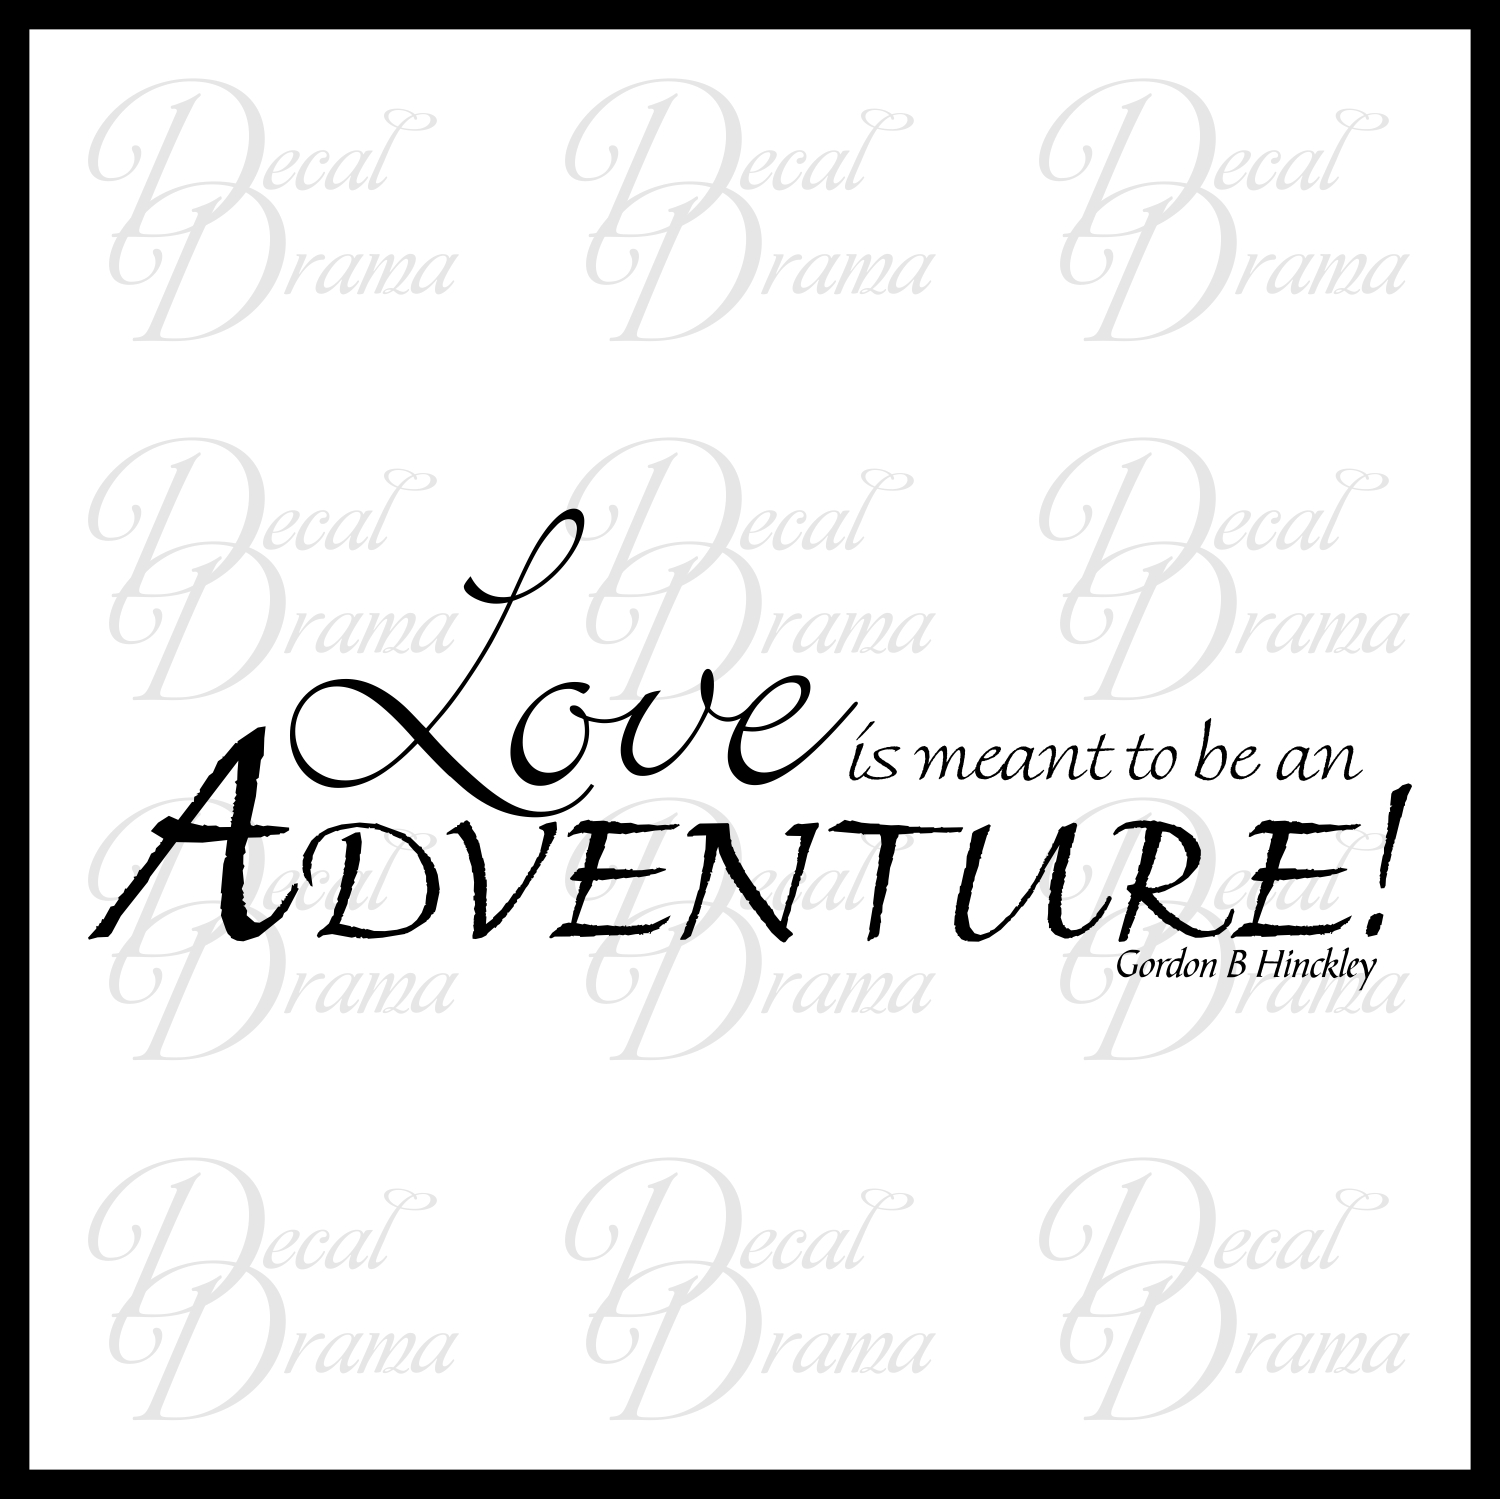 Gordon B Hinckley Quotes Beauteous Decal Drama · Love Is Meant To Be An Adventure Gordon Bhinckley